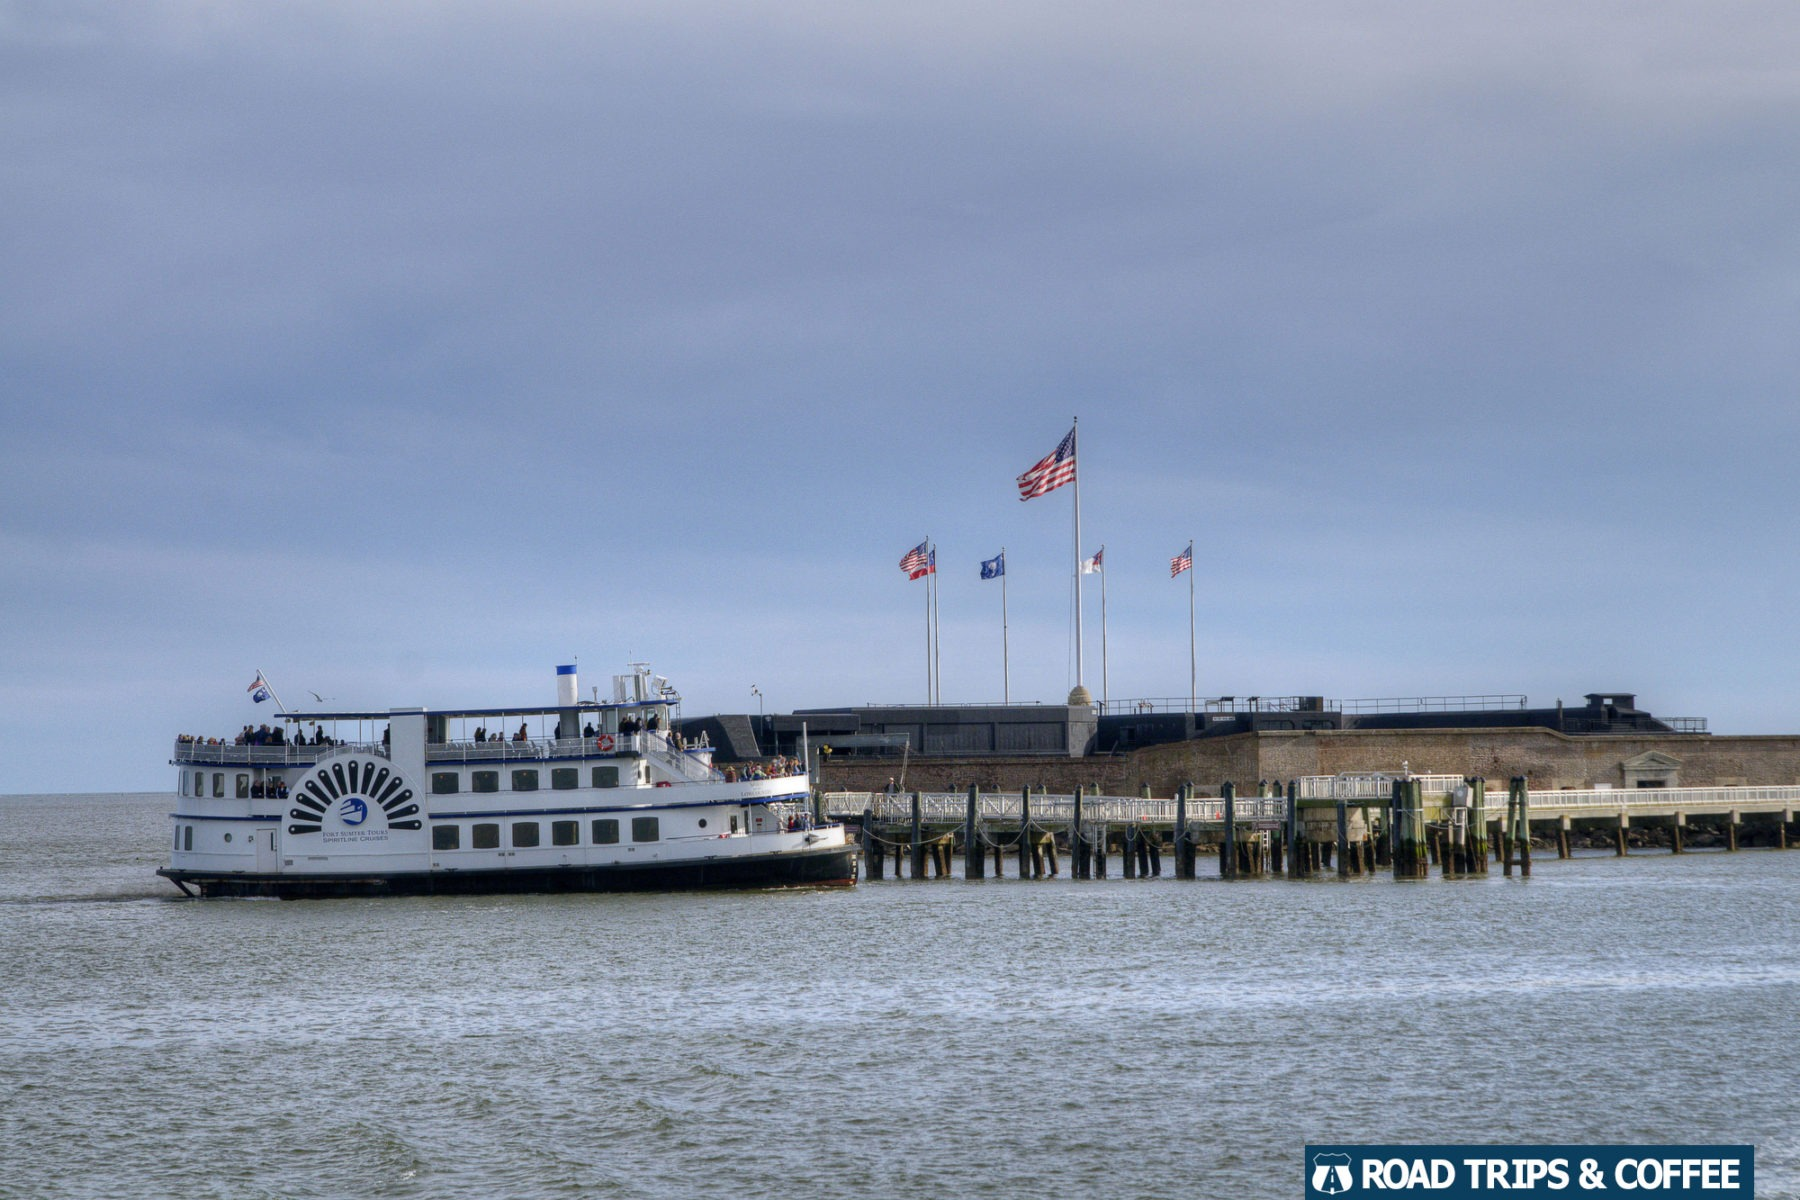 A tour boat pulls up to the dock at Fort Sumter and Fort Moultrie National Historic Site in Charleston, South Carolina